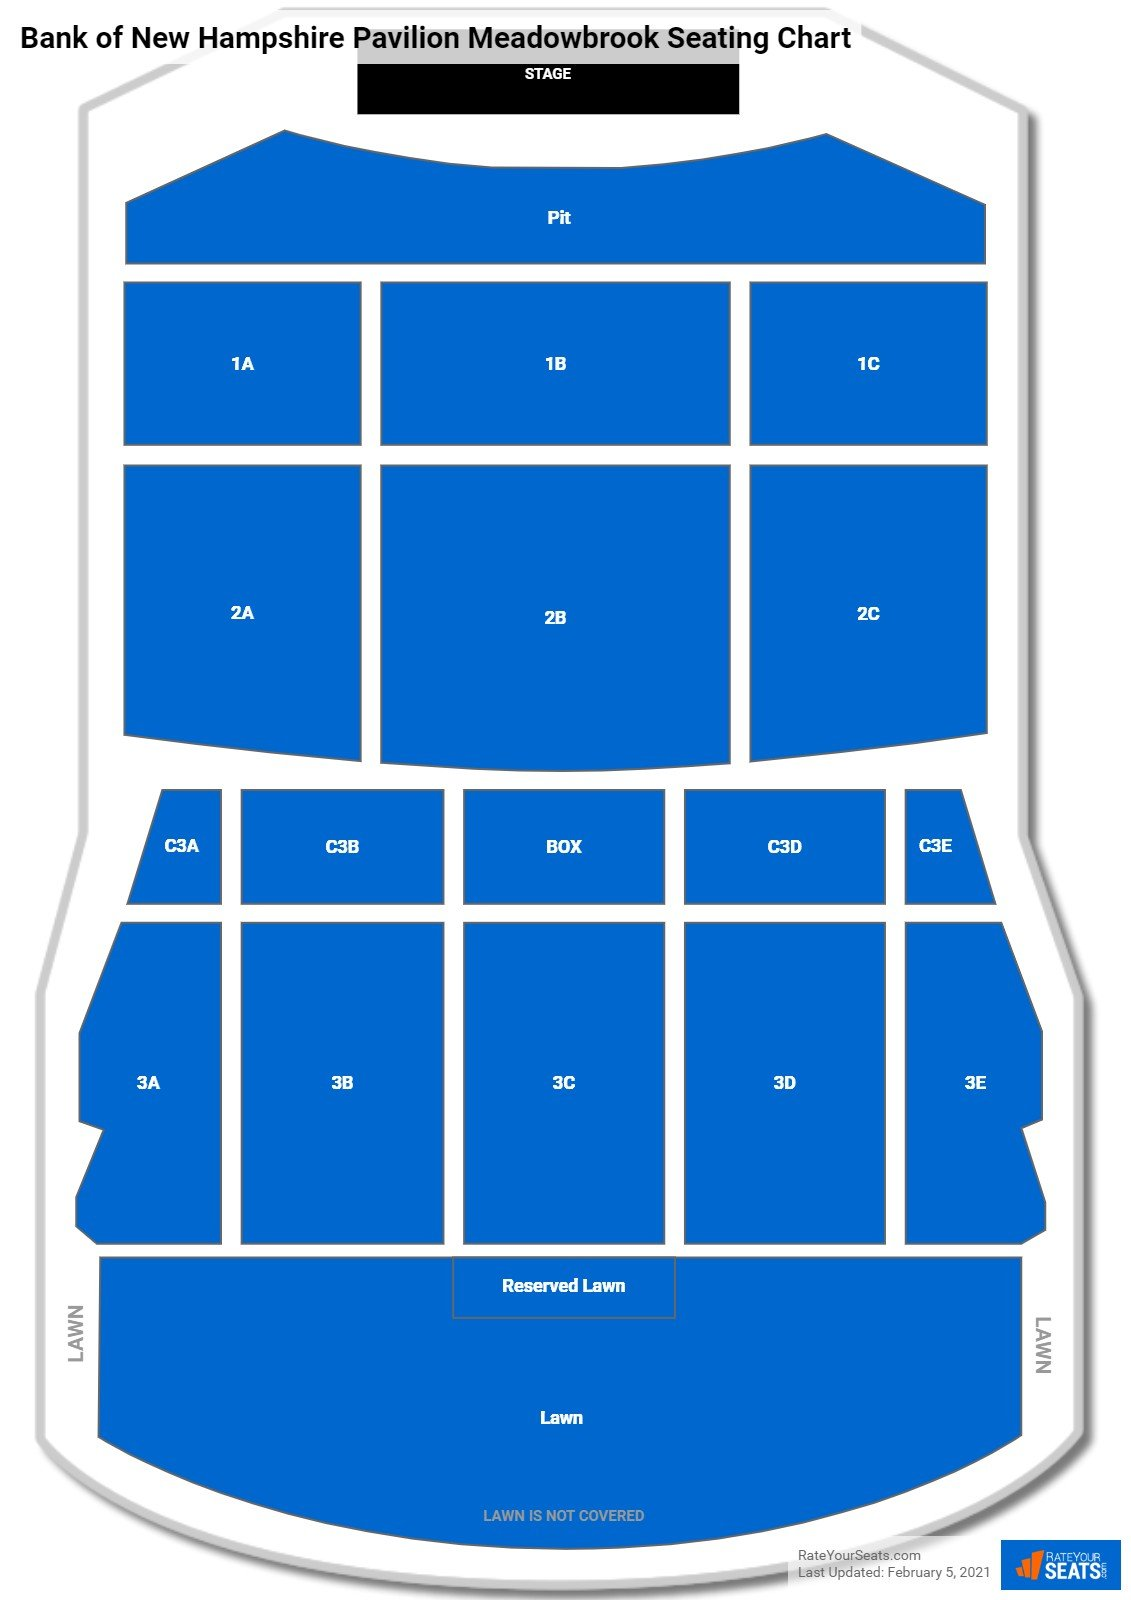 Bank of New Hampshire Pavilion Meadowbrook Seating Chart